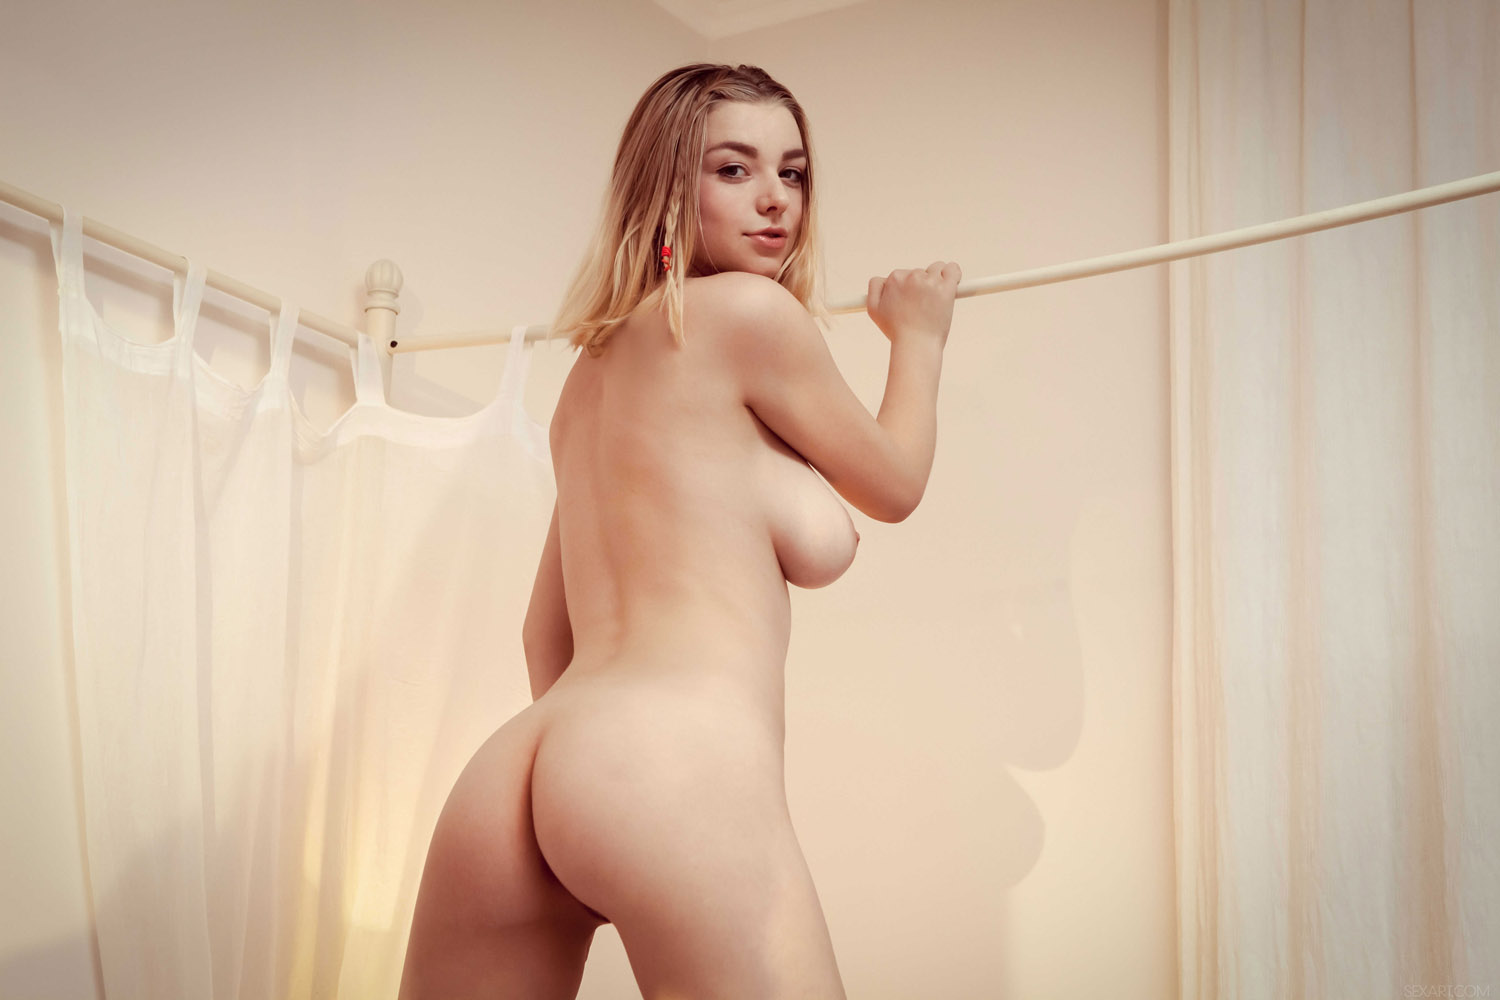 April brookes shows you her naked beauty 2